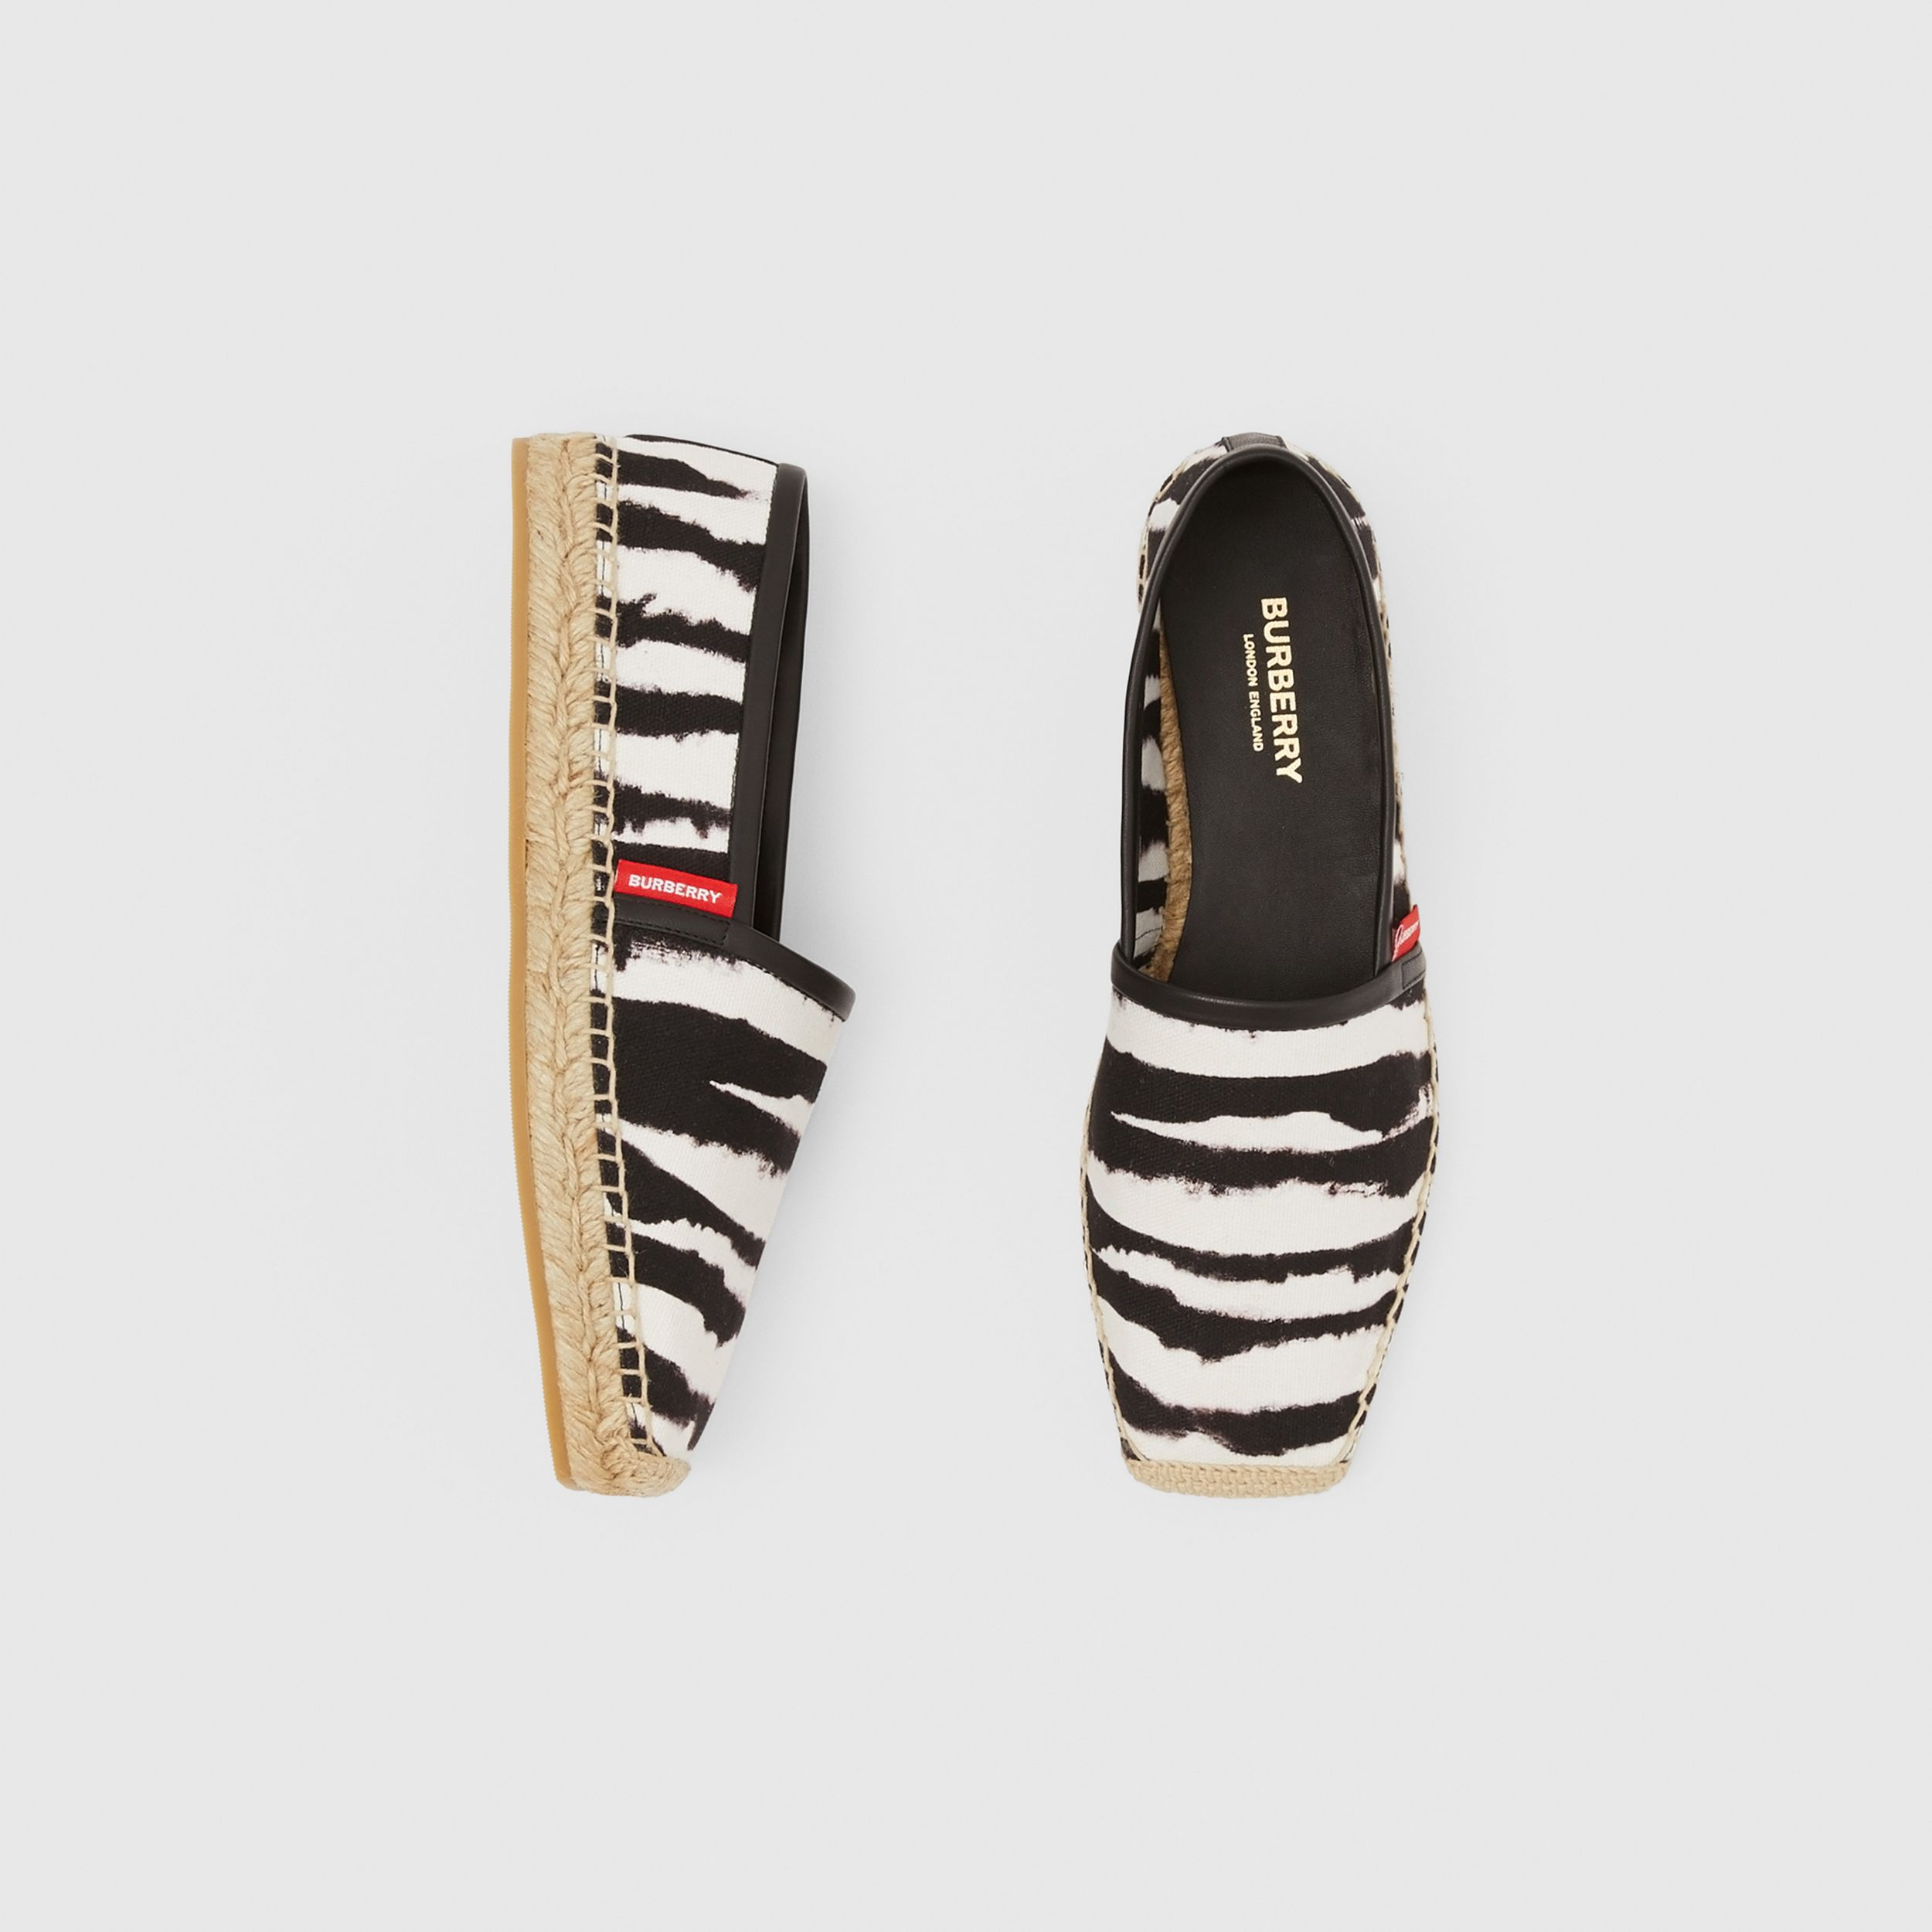 Watercolour Print Cotton Canvas Espadrilles in Black/white - Women | Burberry Hong Kong S.A.R. - 1